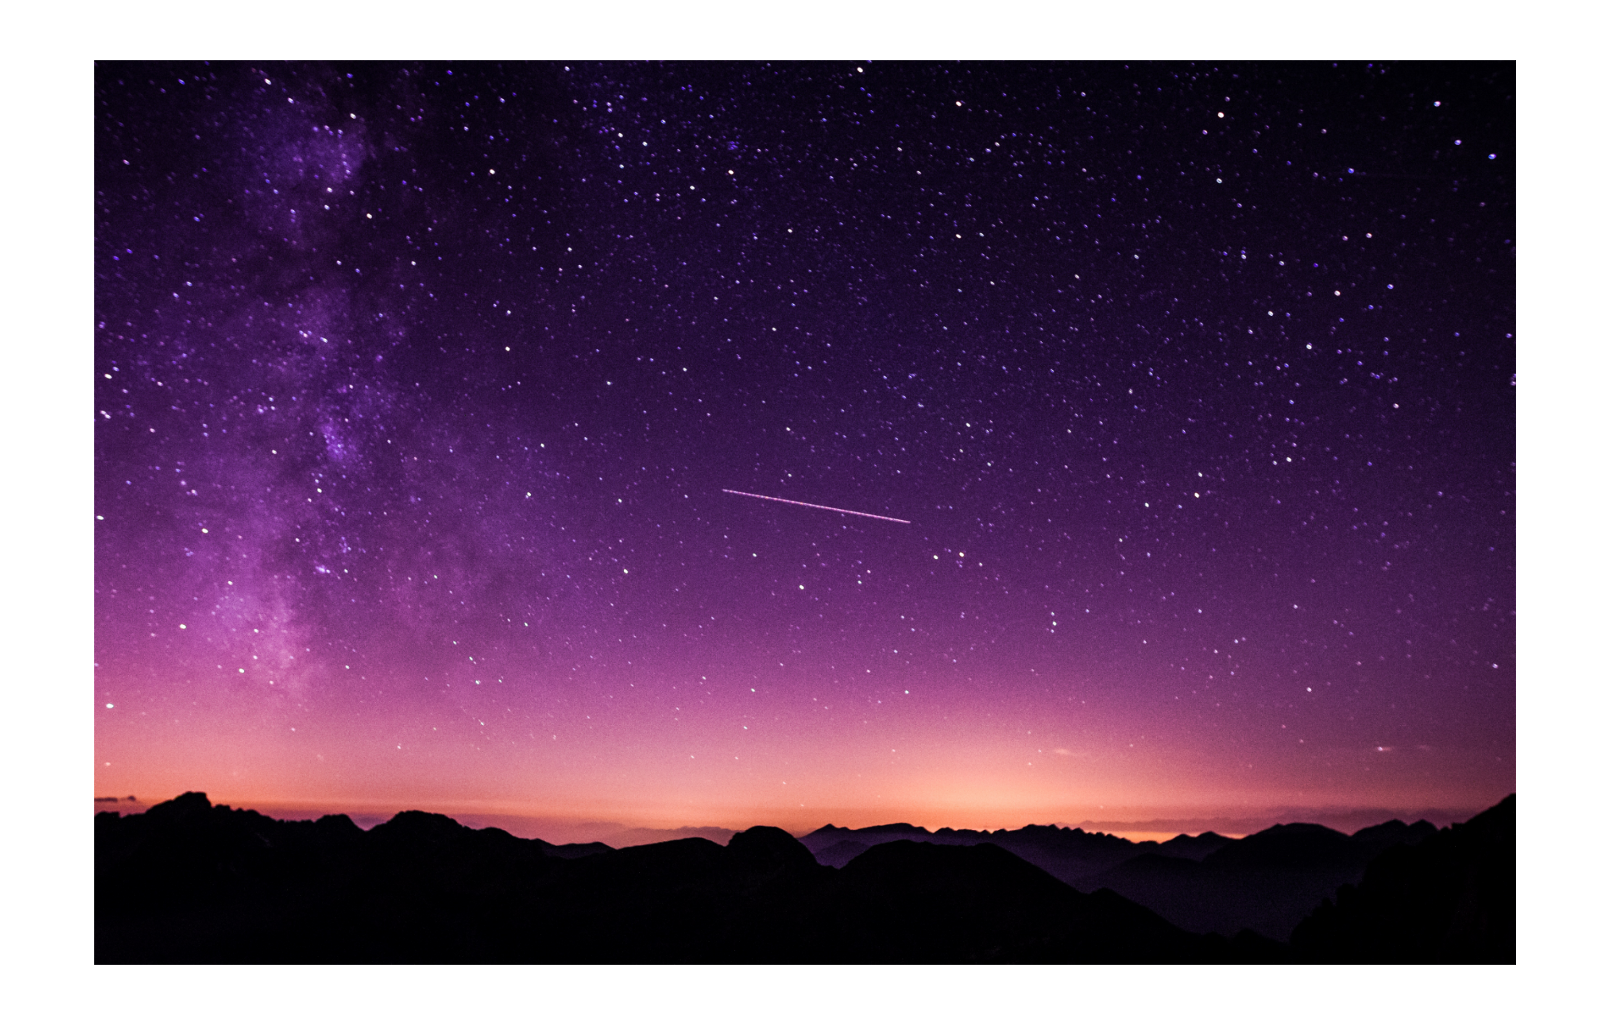 Night sky png. Backgrounds images gallery with